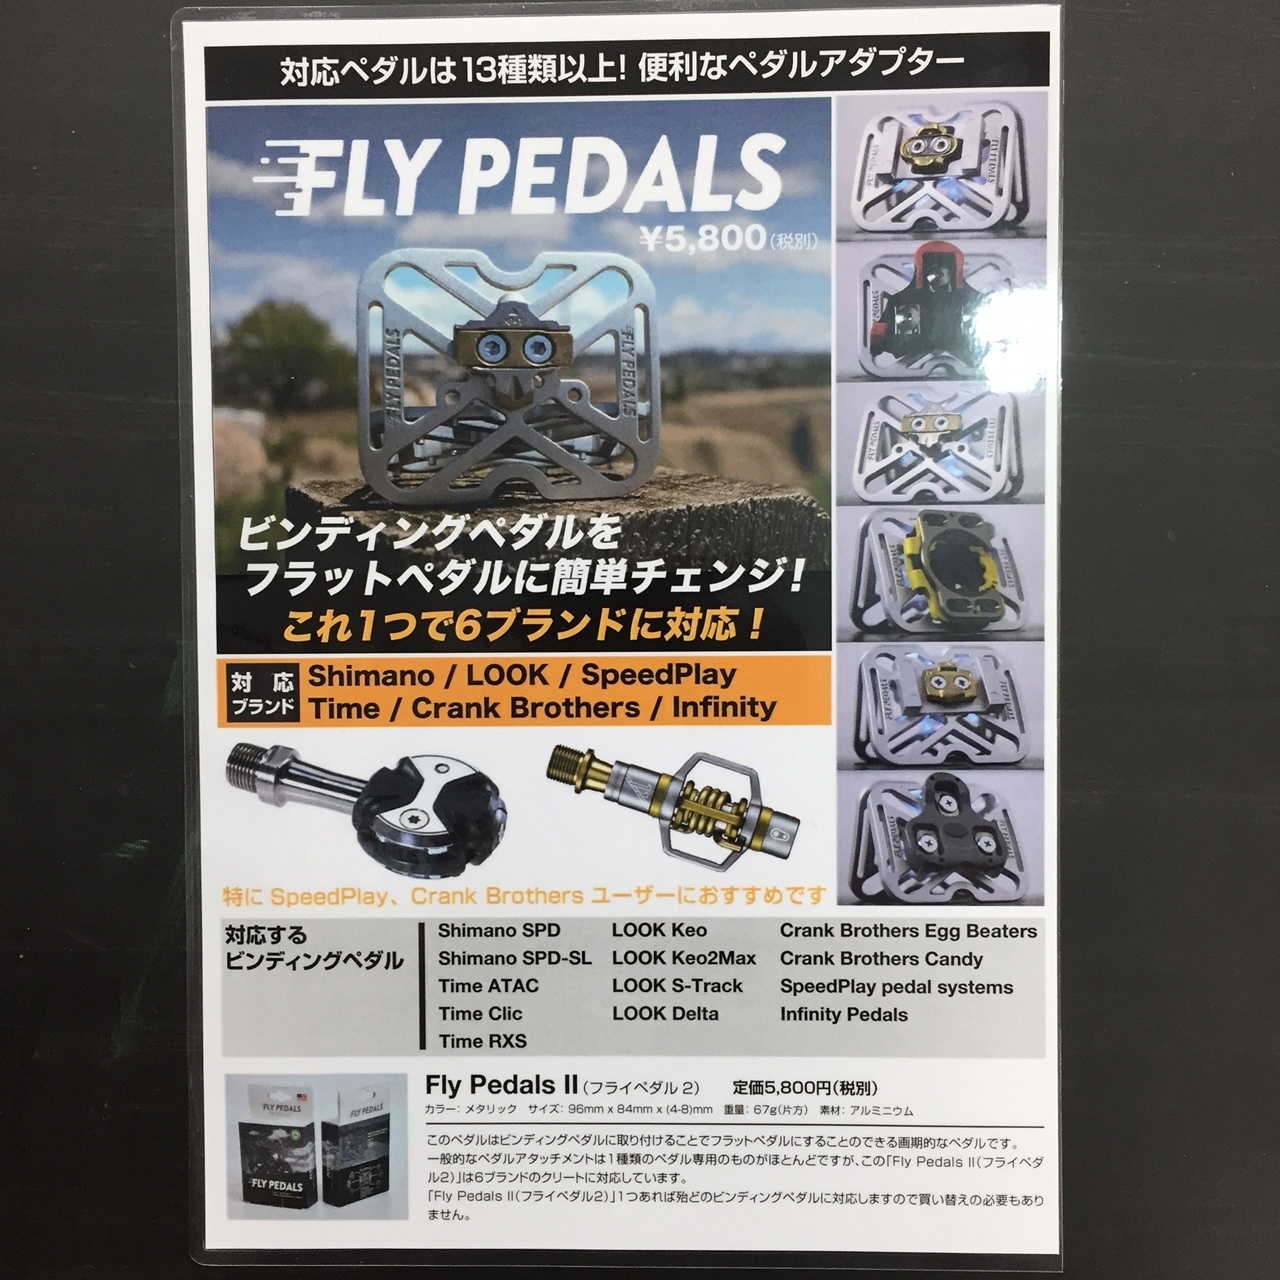 FLYPEDALS-3.jpg